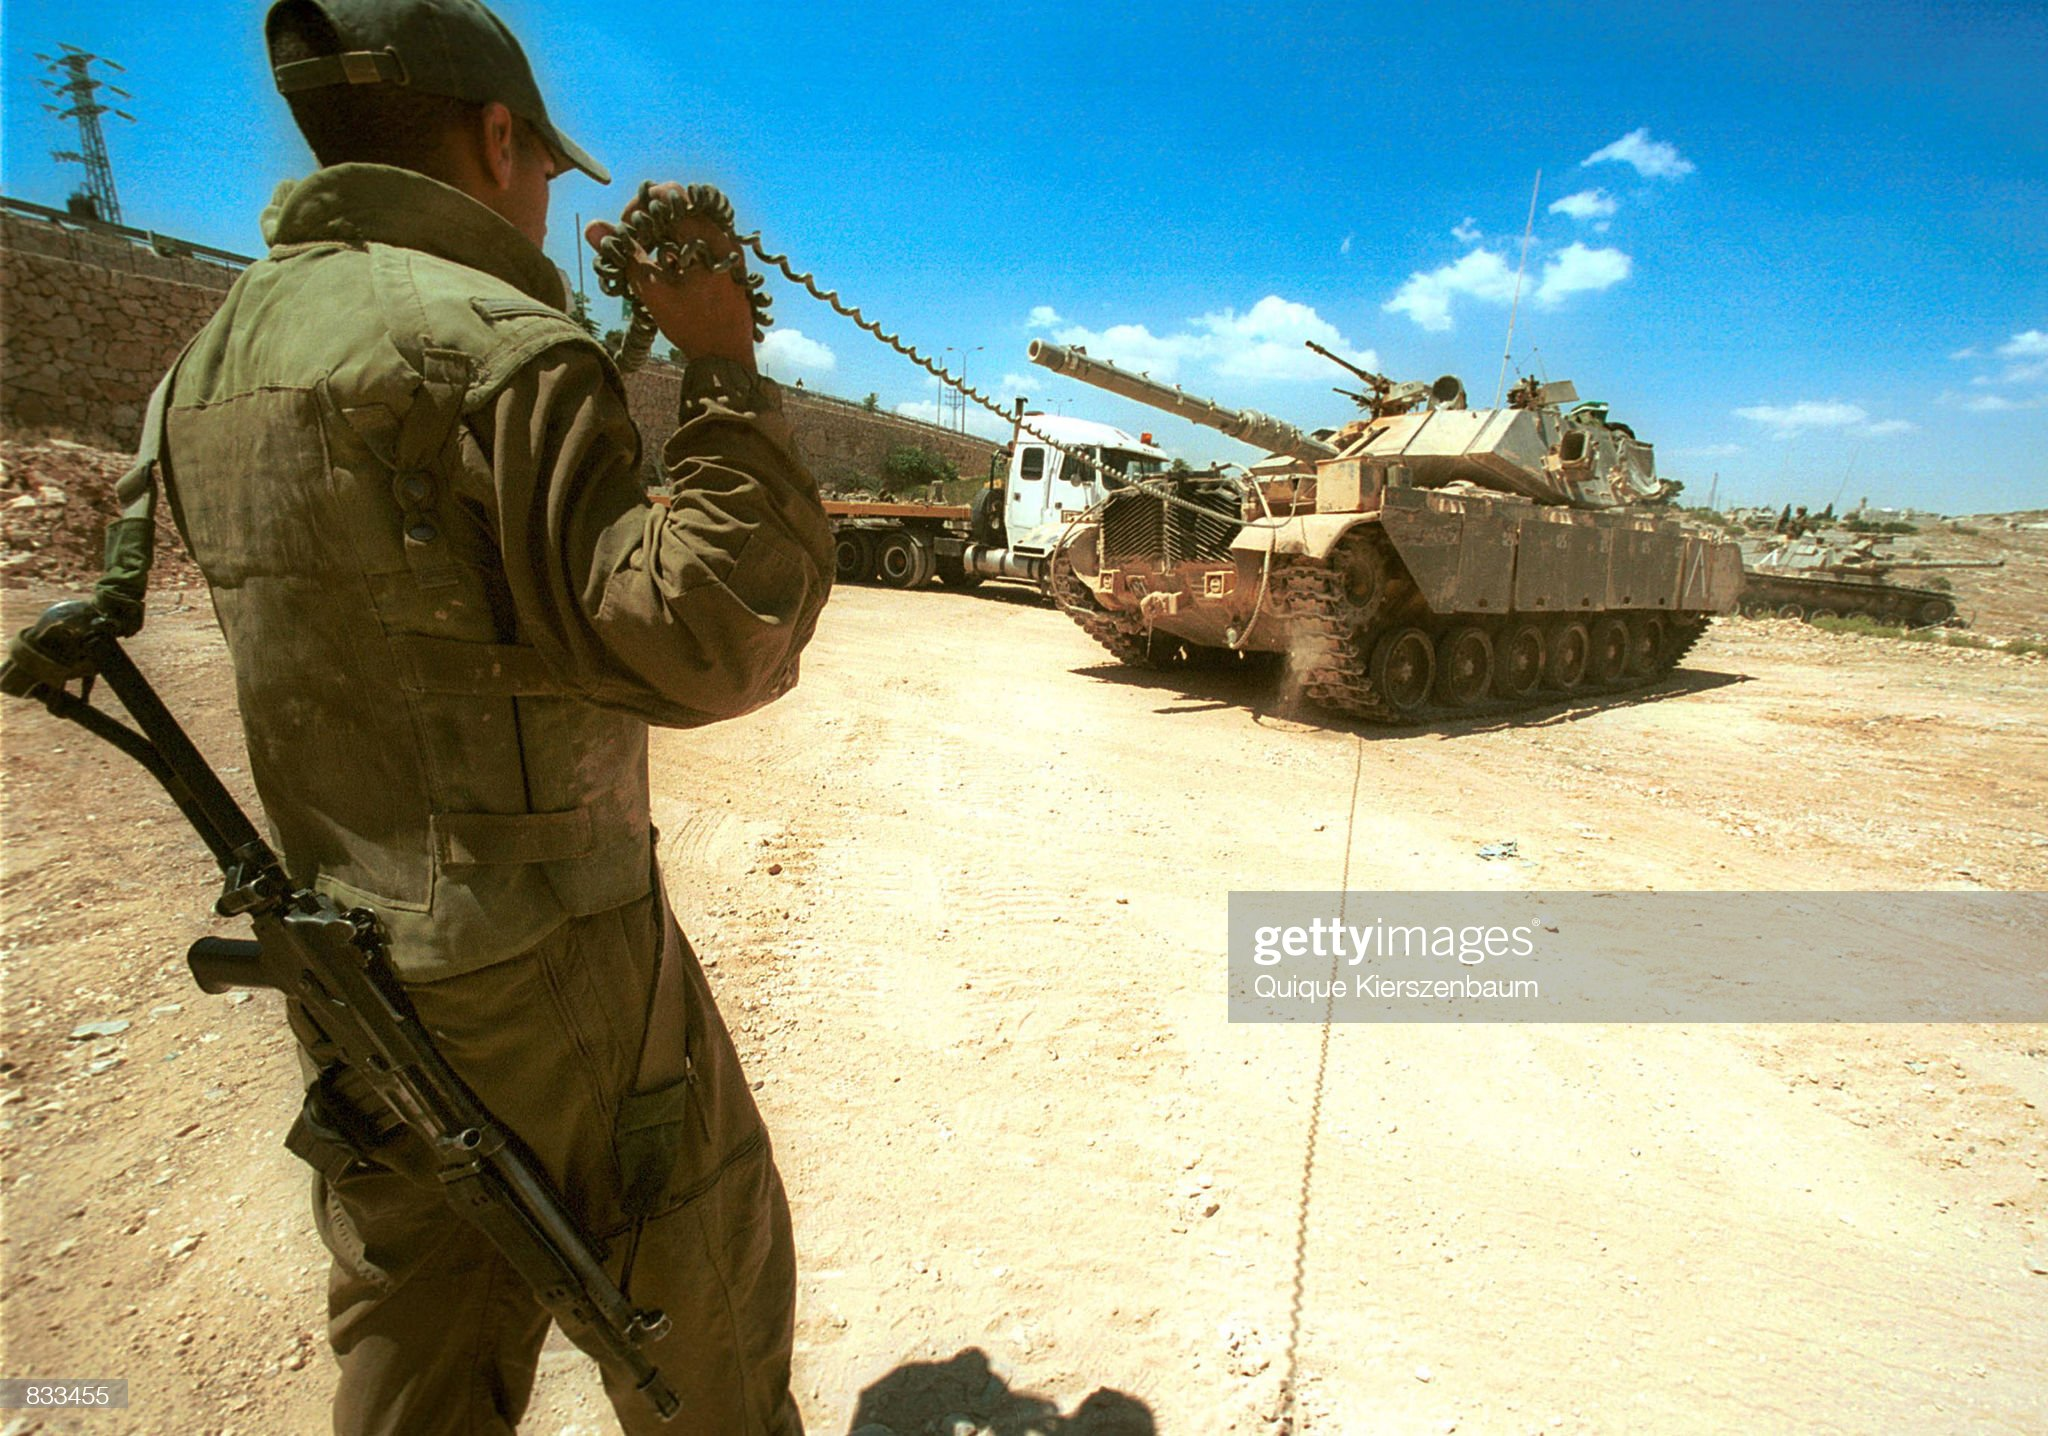 https://media.gettyimages.com/photos/an-israeli-soldier-guides-a-tank-june-23-2002-on-jerusalems-border-picture-id833455?s=2048x2048